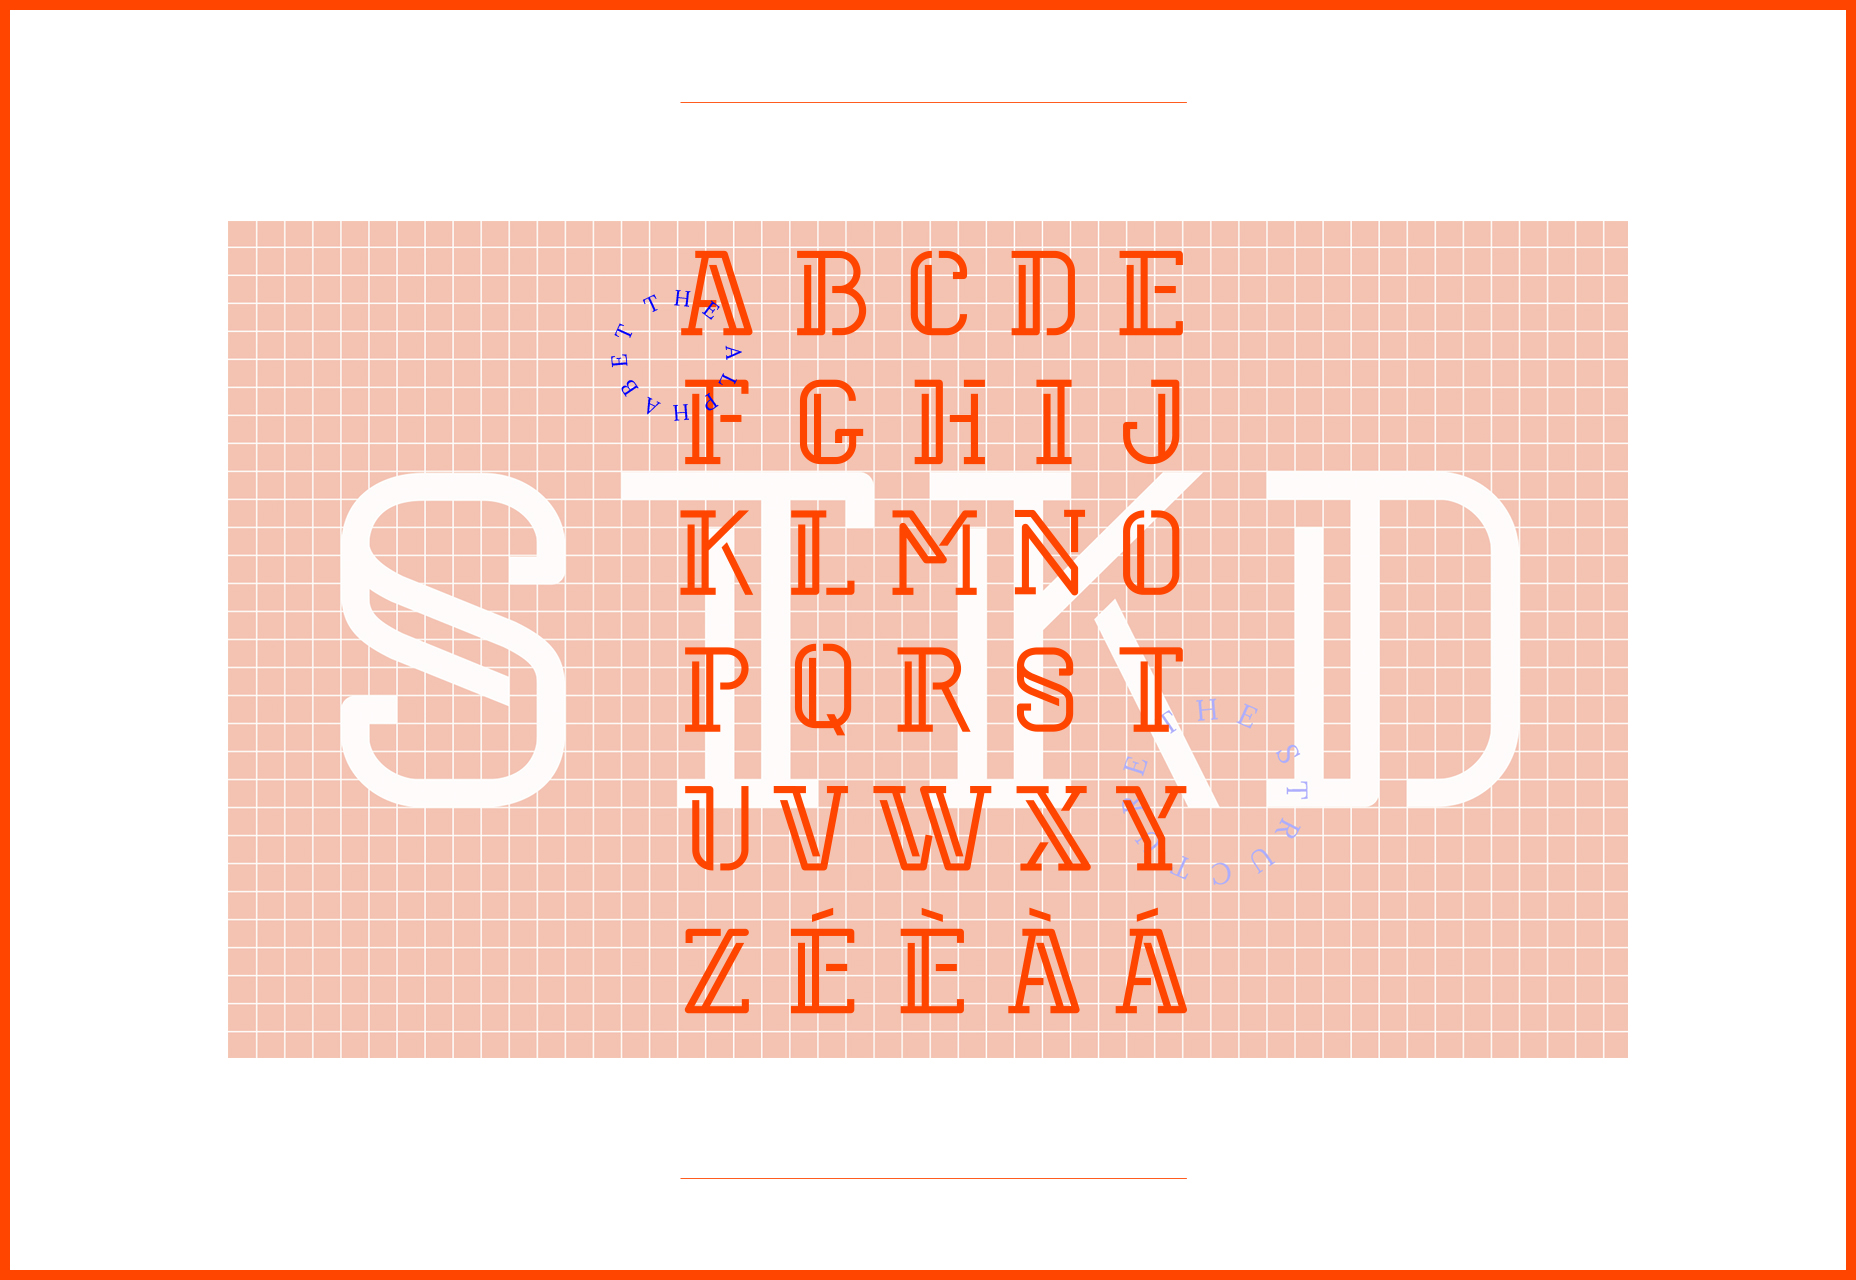 stoked-side-offset-featured-typeface